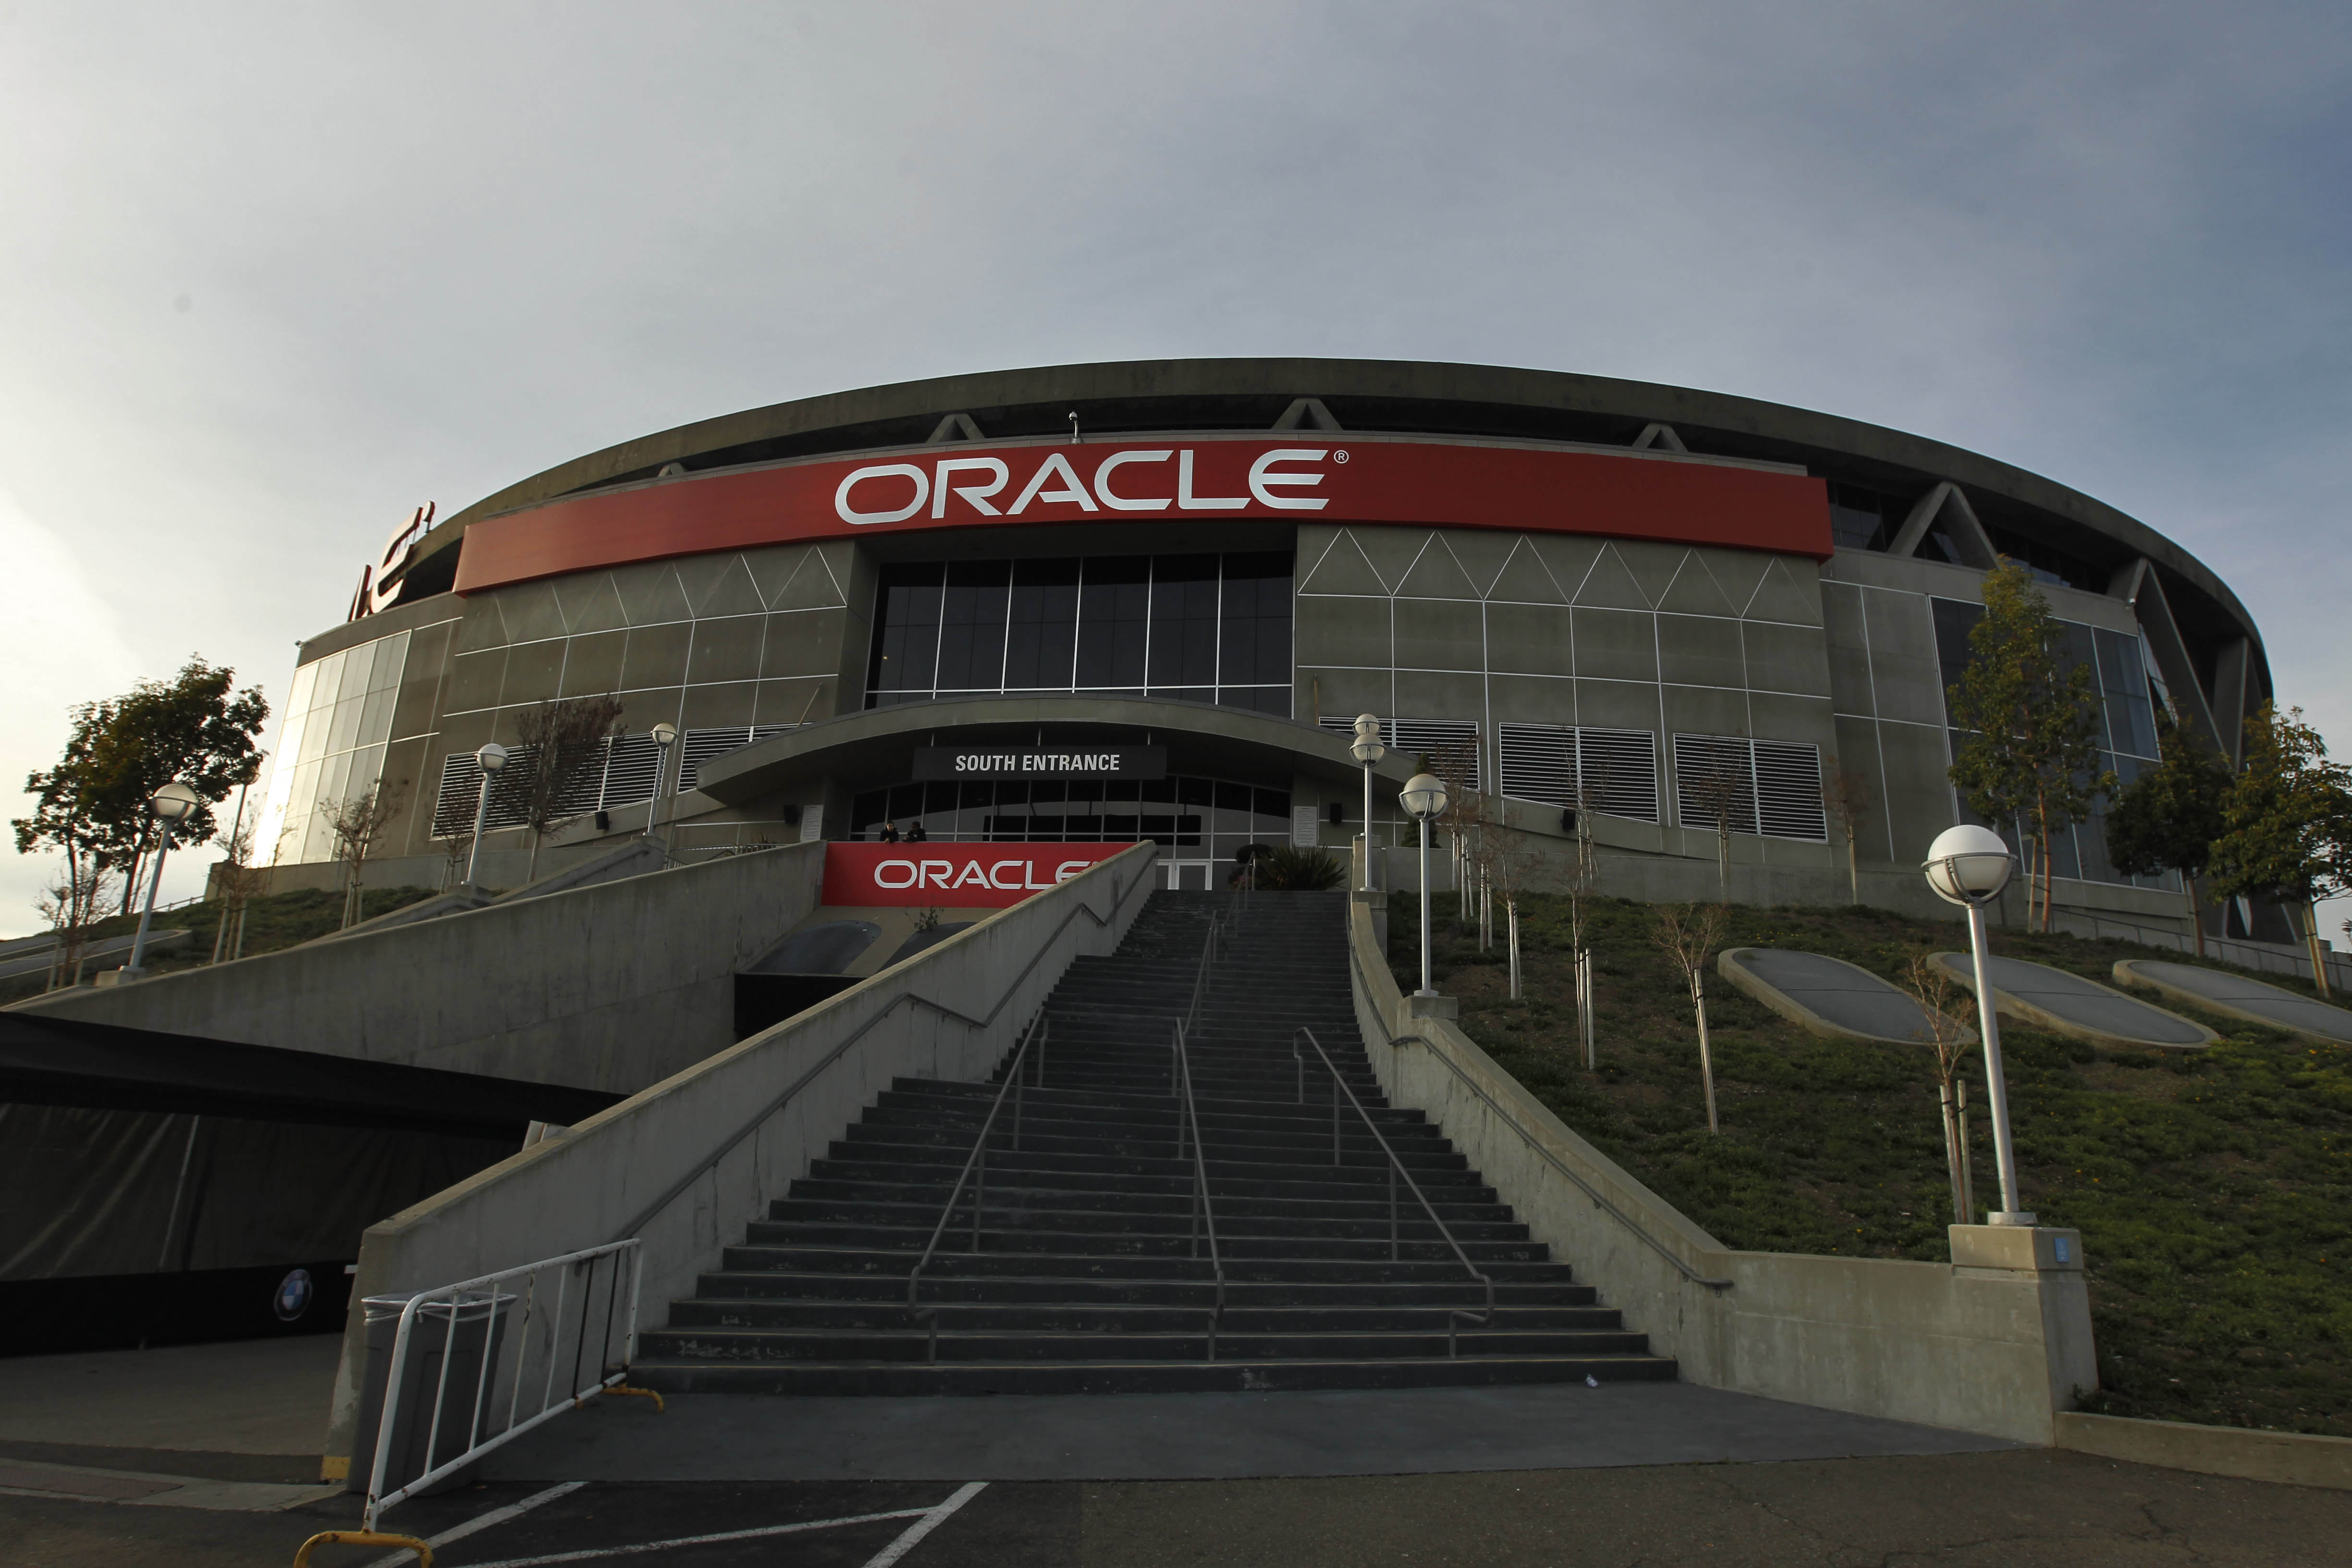 Oracle Arena is home to the highest average ticket prices in the NBA.